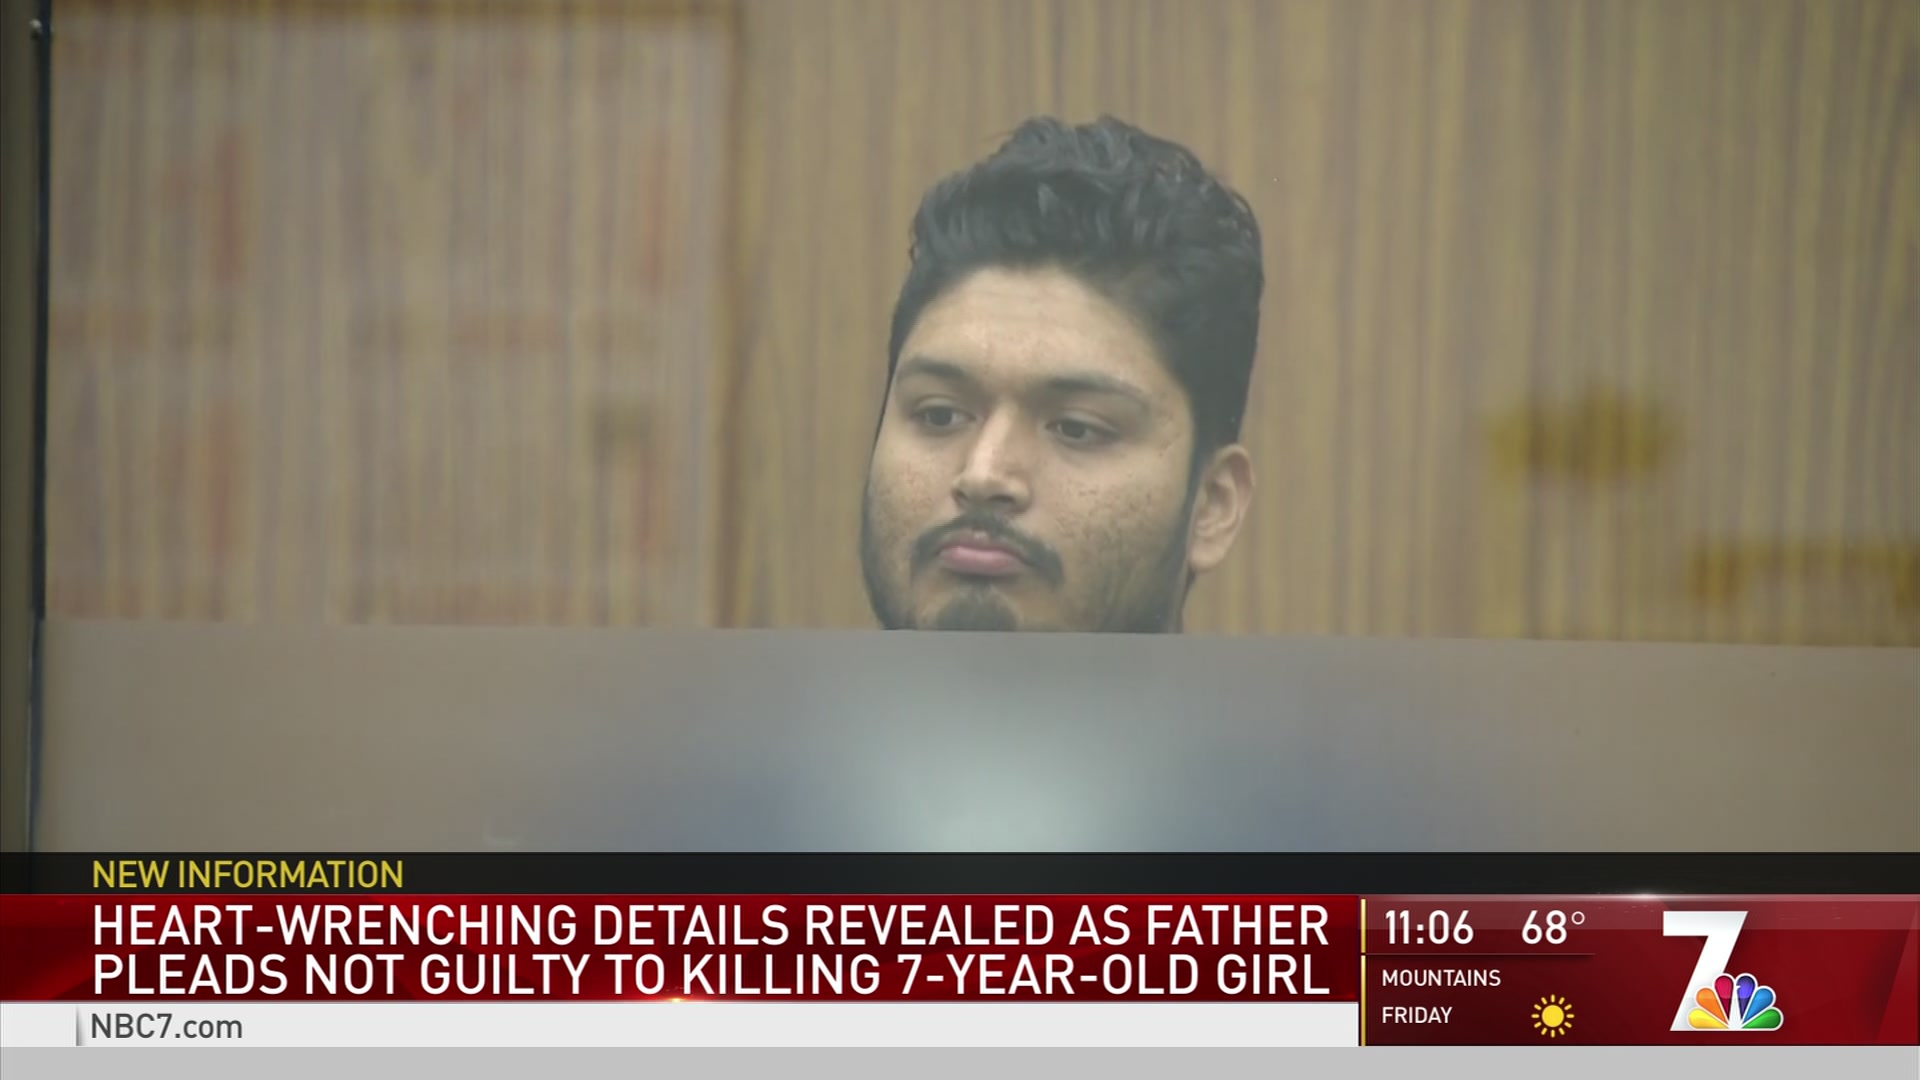 Father Pleads Not Guilty in Stabbing Death of Daughter